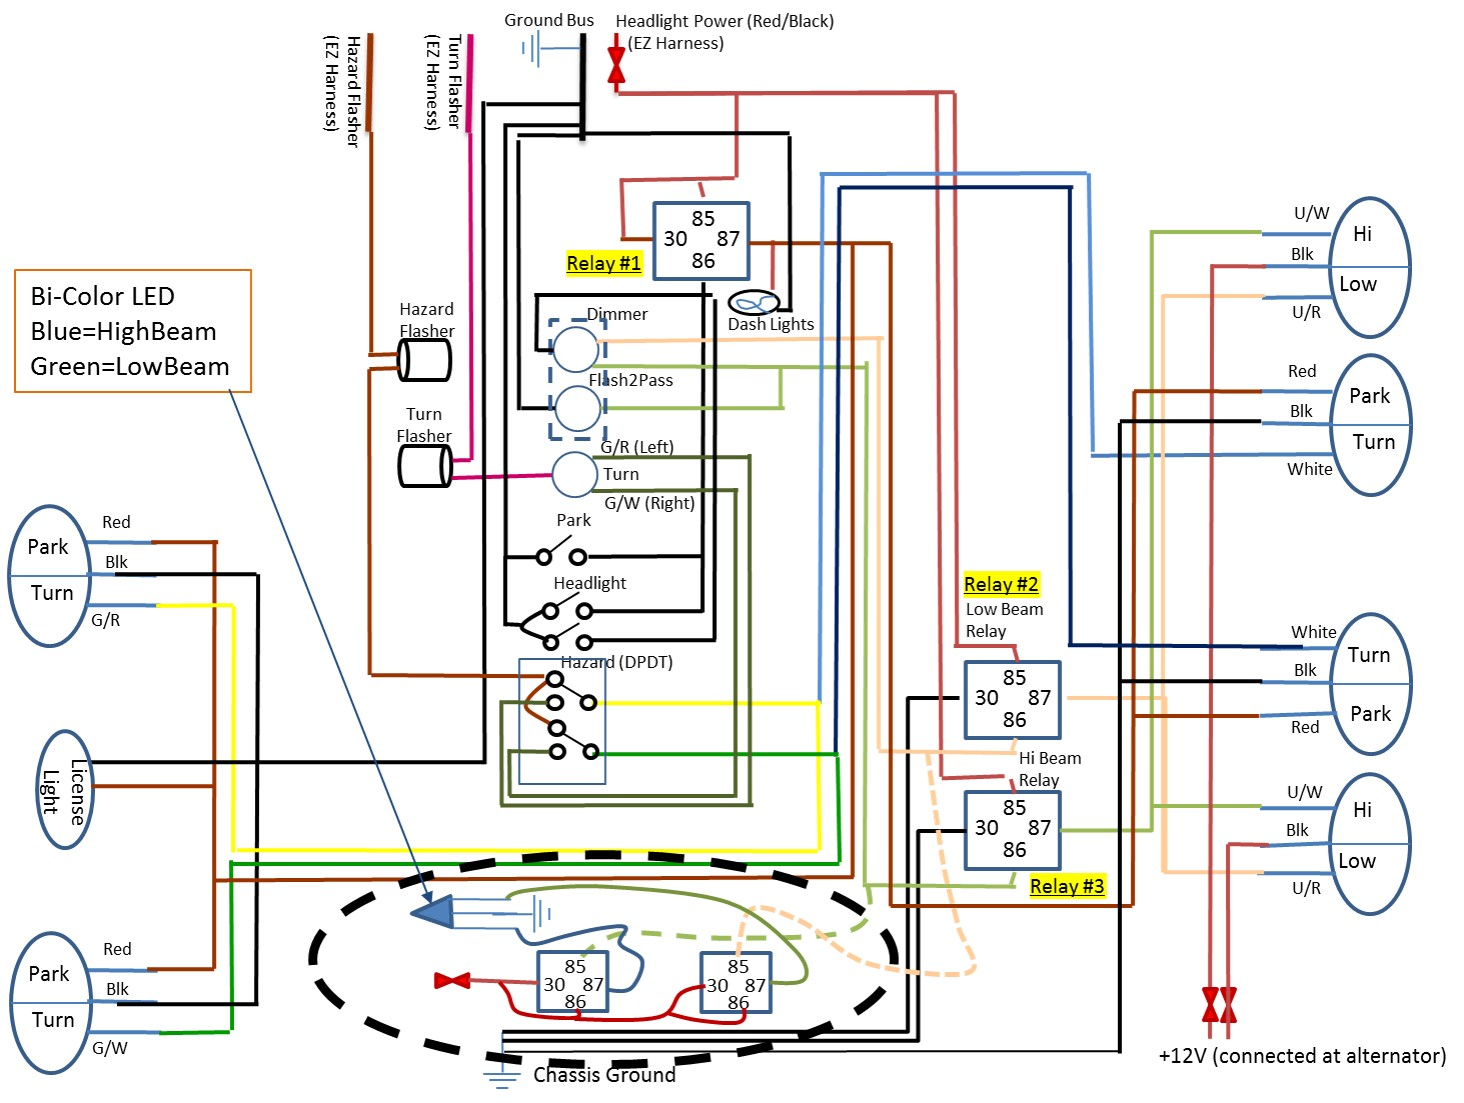 hight resolution of new car wiring diagram led wiring diagram schematics electrical wiring for car stereo relay could use